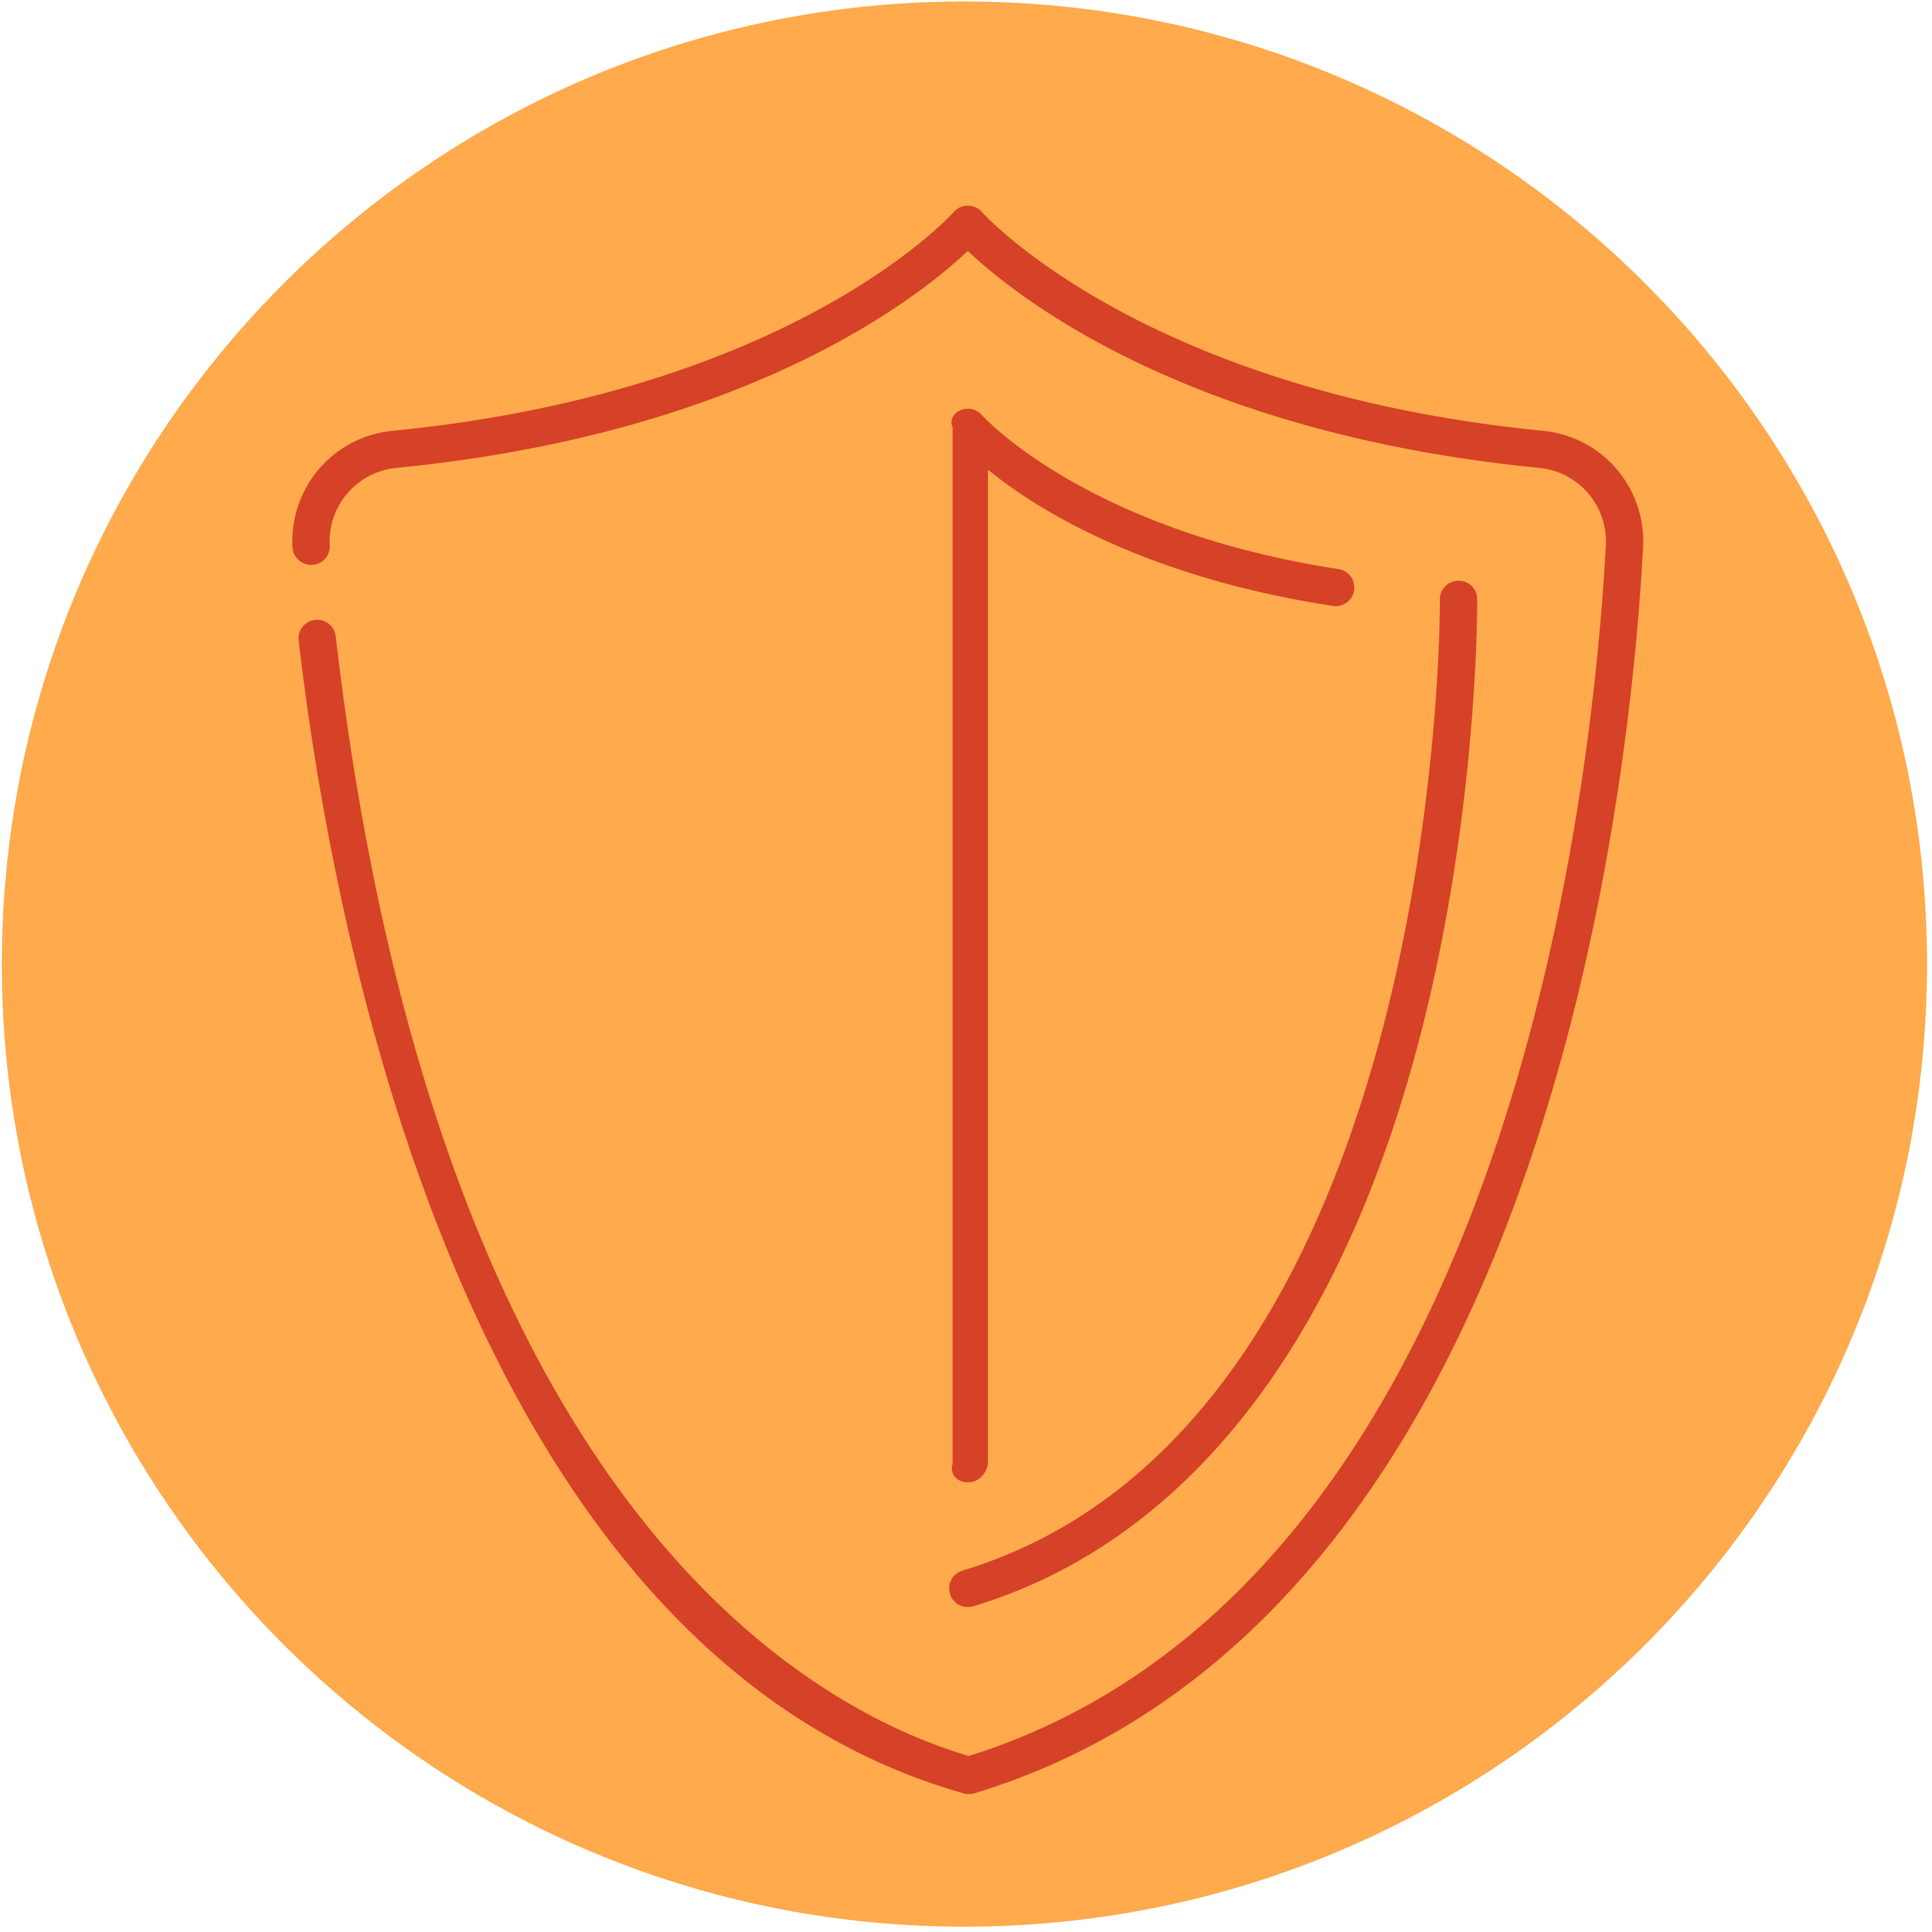 OSU icon security shield